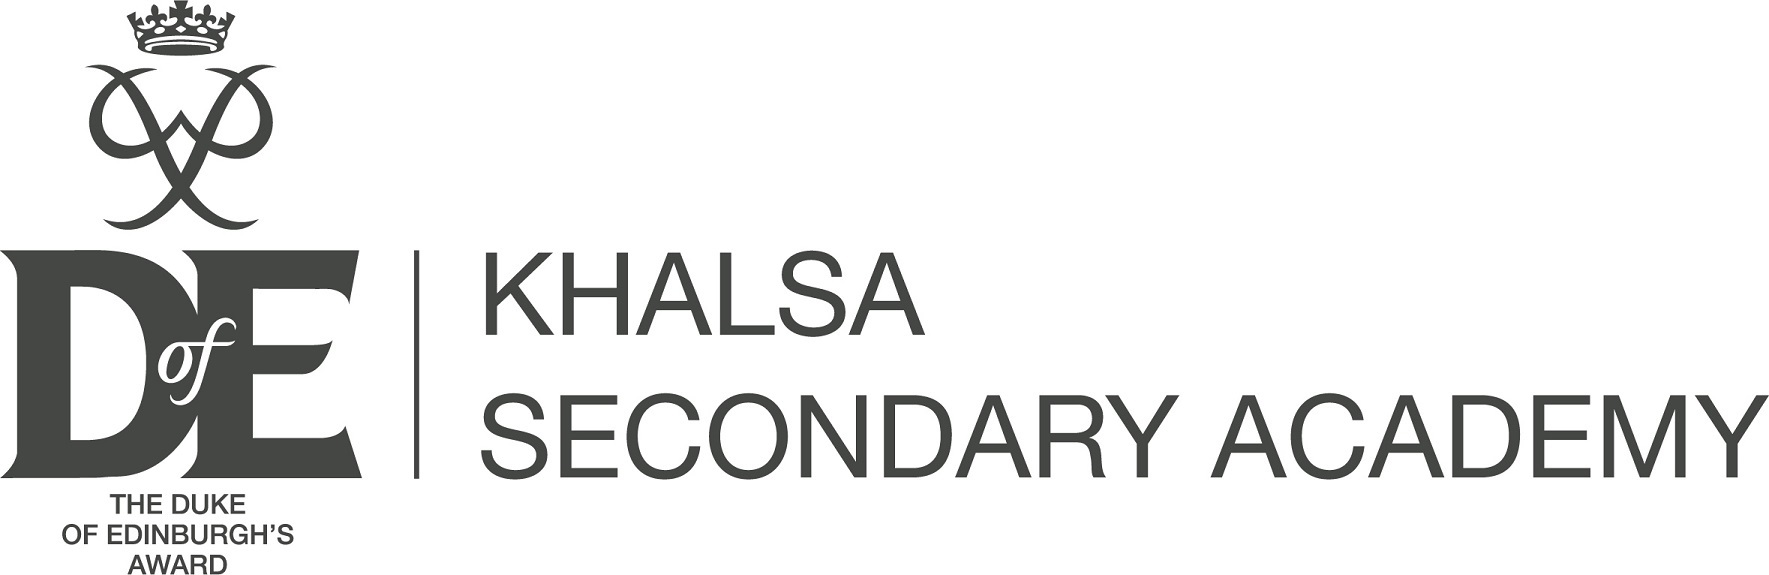 Dofe logo khalsa secondary academy updated